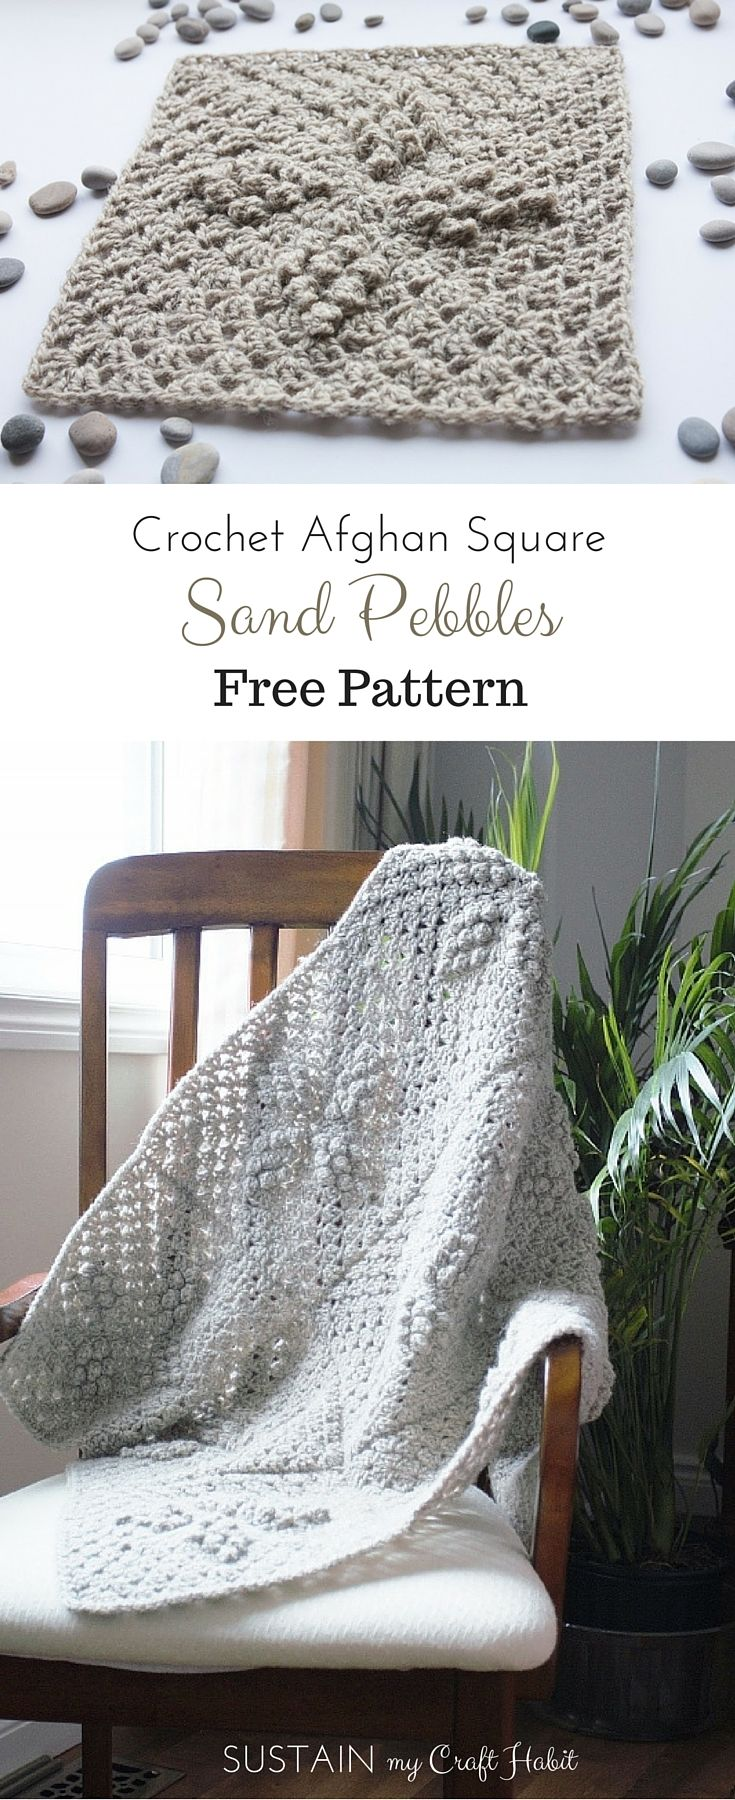 Make a beautiful wool afghan with this free crochet pattern for a sand pebbles diamond square design by SustainMyCraftHabit.